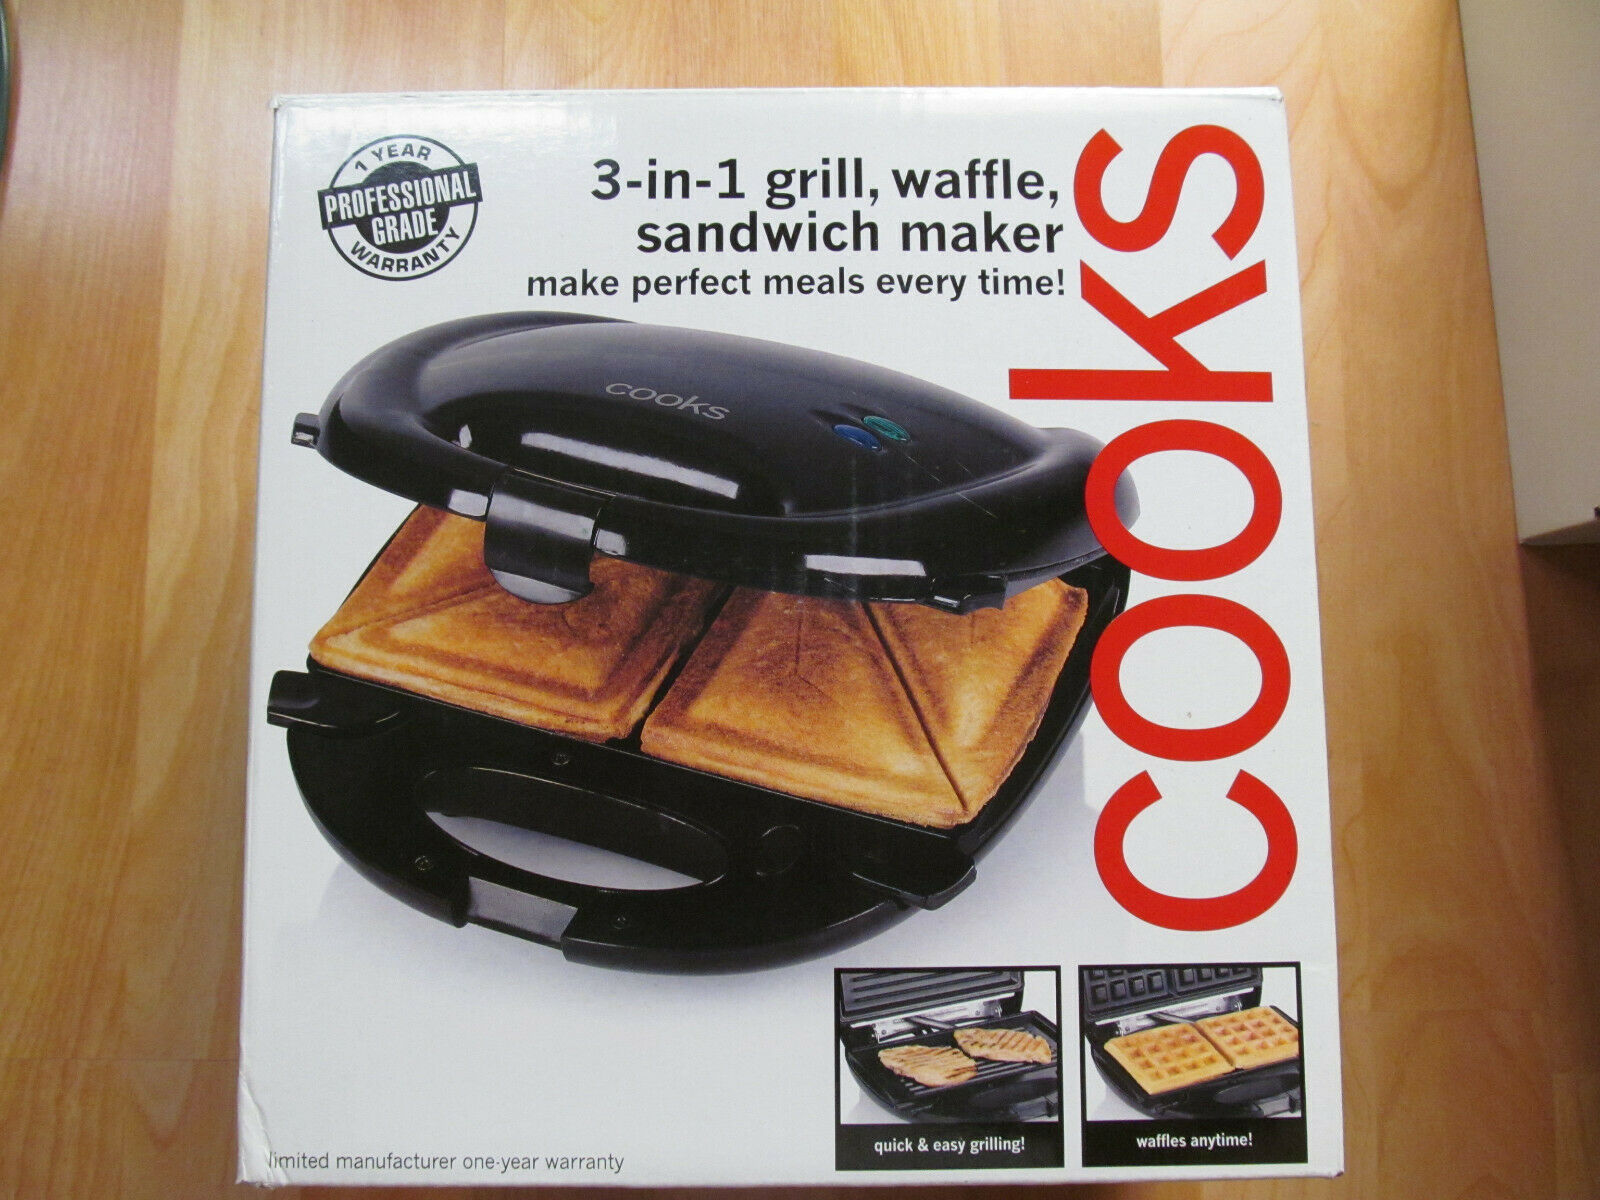 cooks 3 in 1 grill waffle sandwich